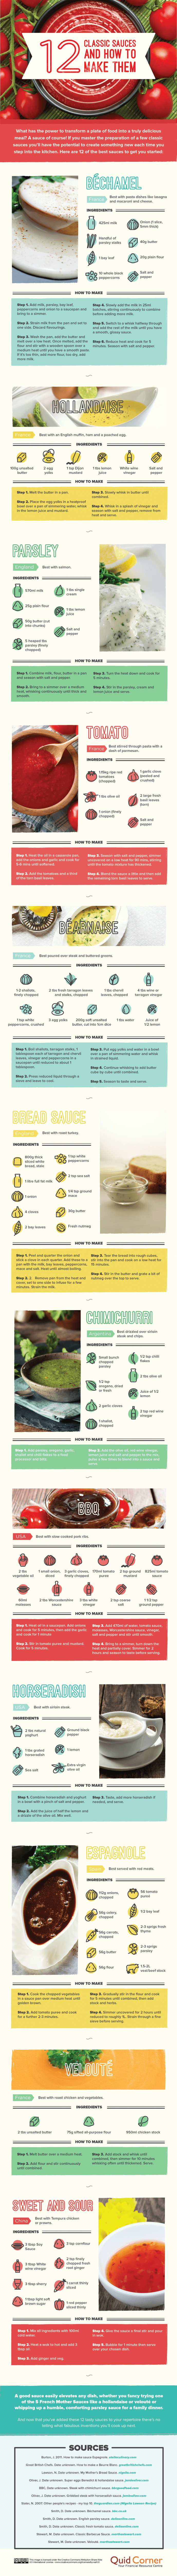 12 classic sauces and-how-to-make-them-full-image